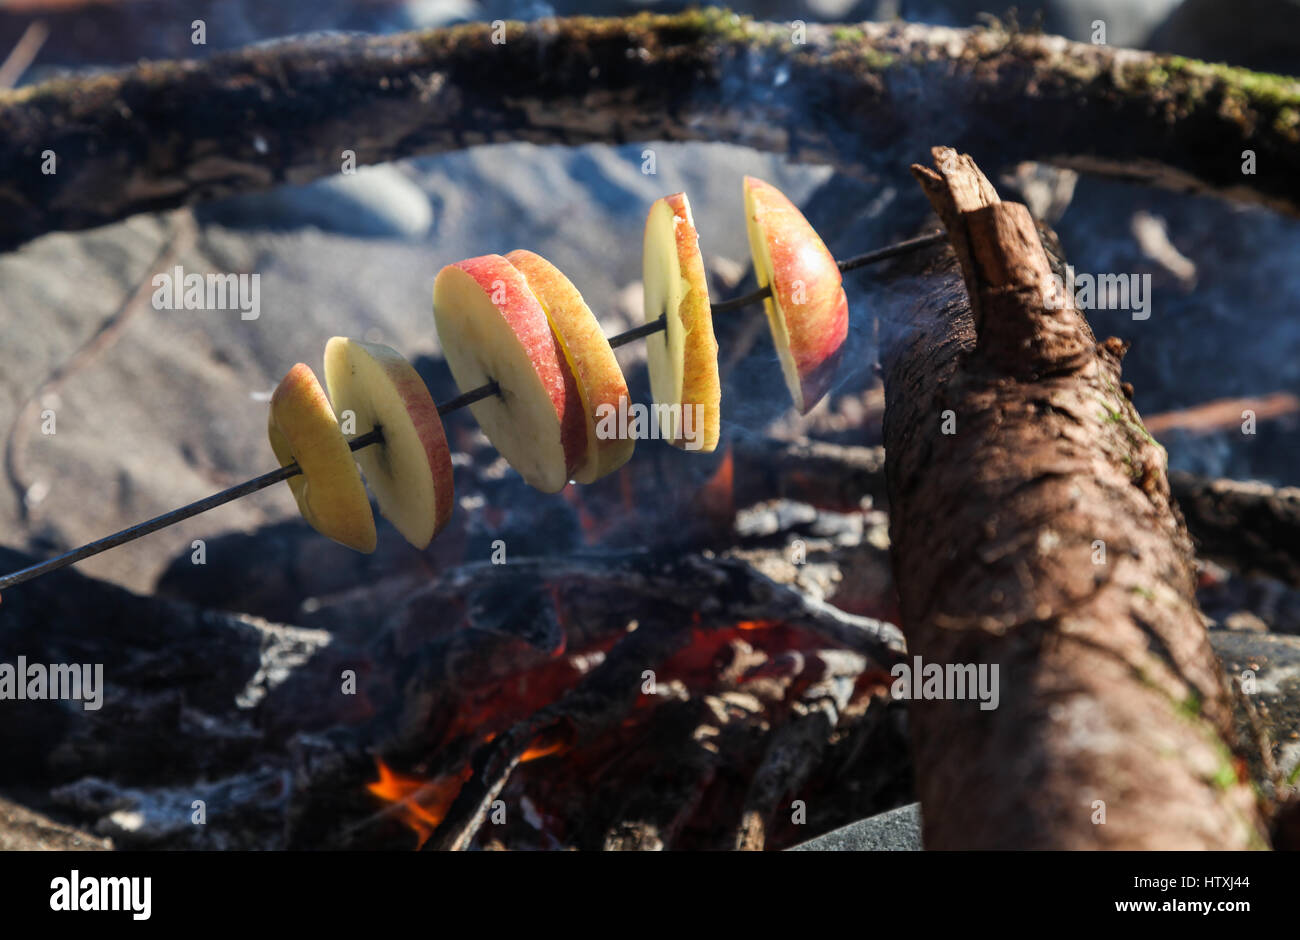 Roasting Apples over a beach fire - Stock Image